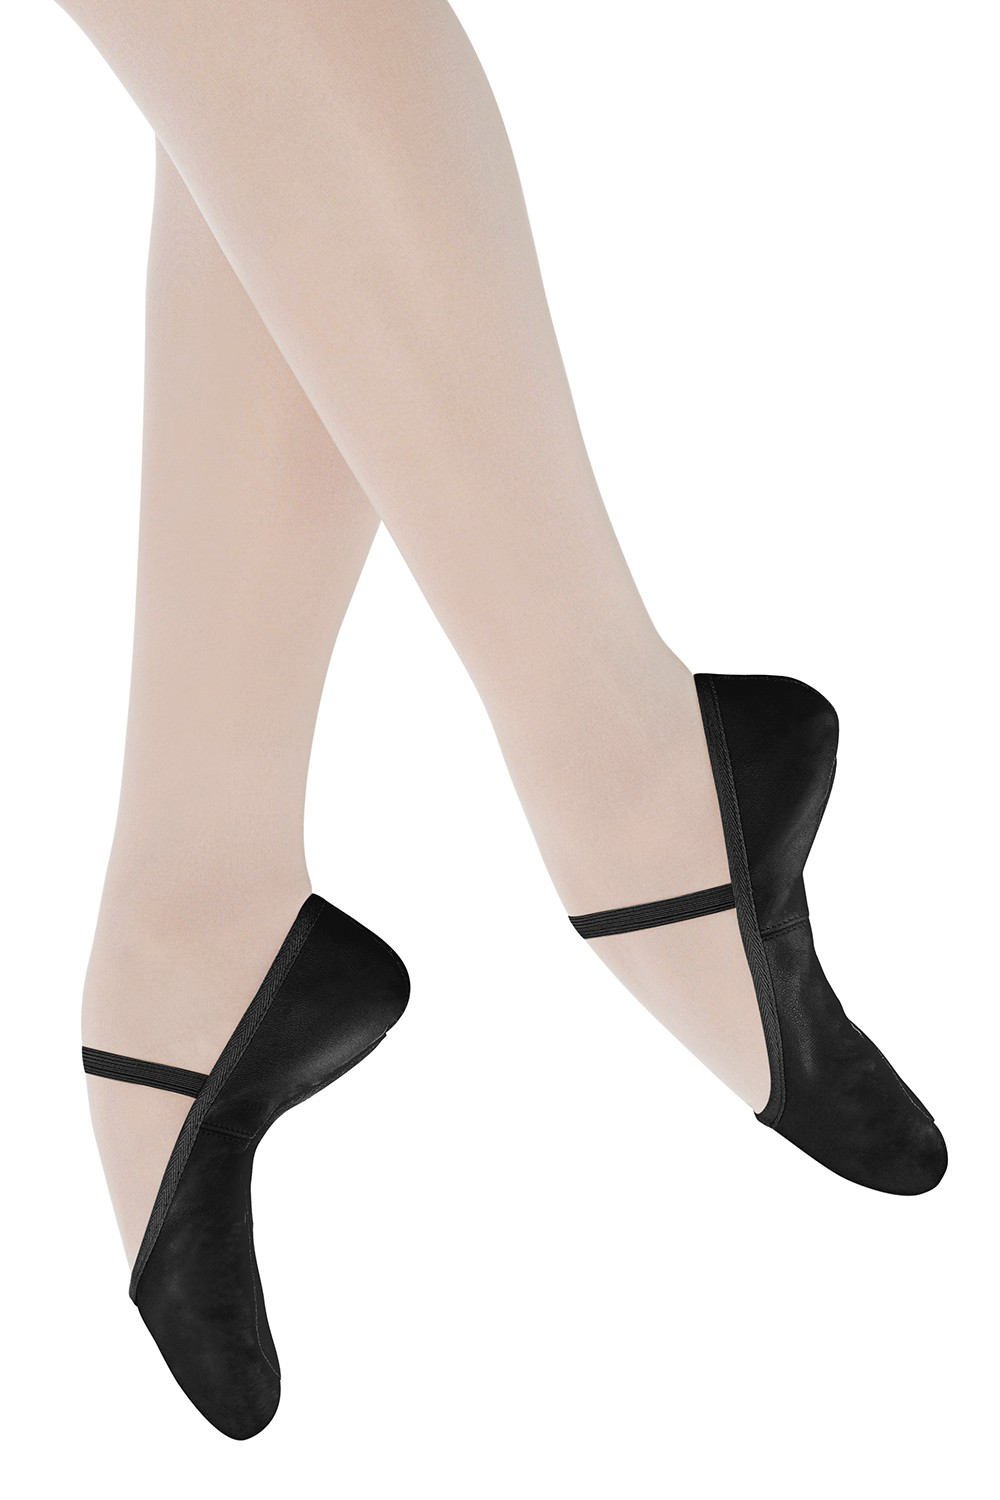 S0204l Women's Ballet Shoes